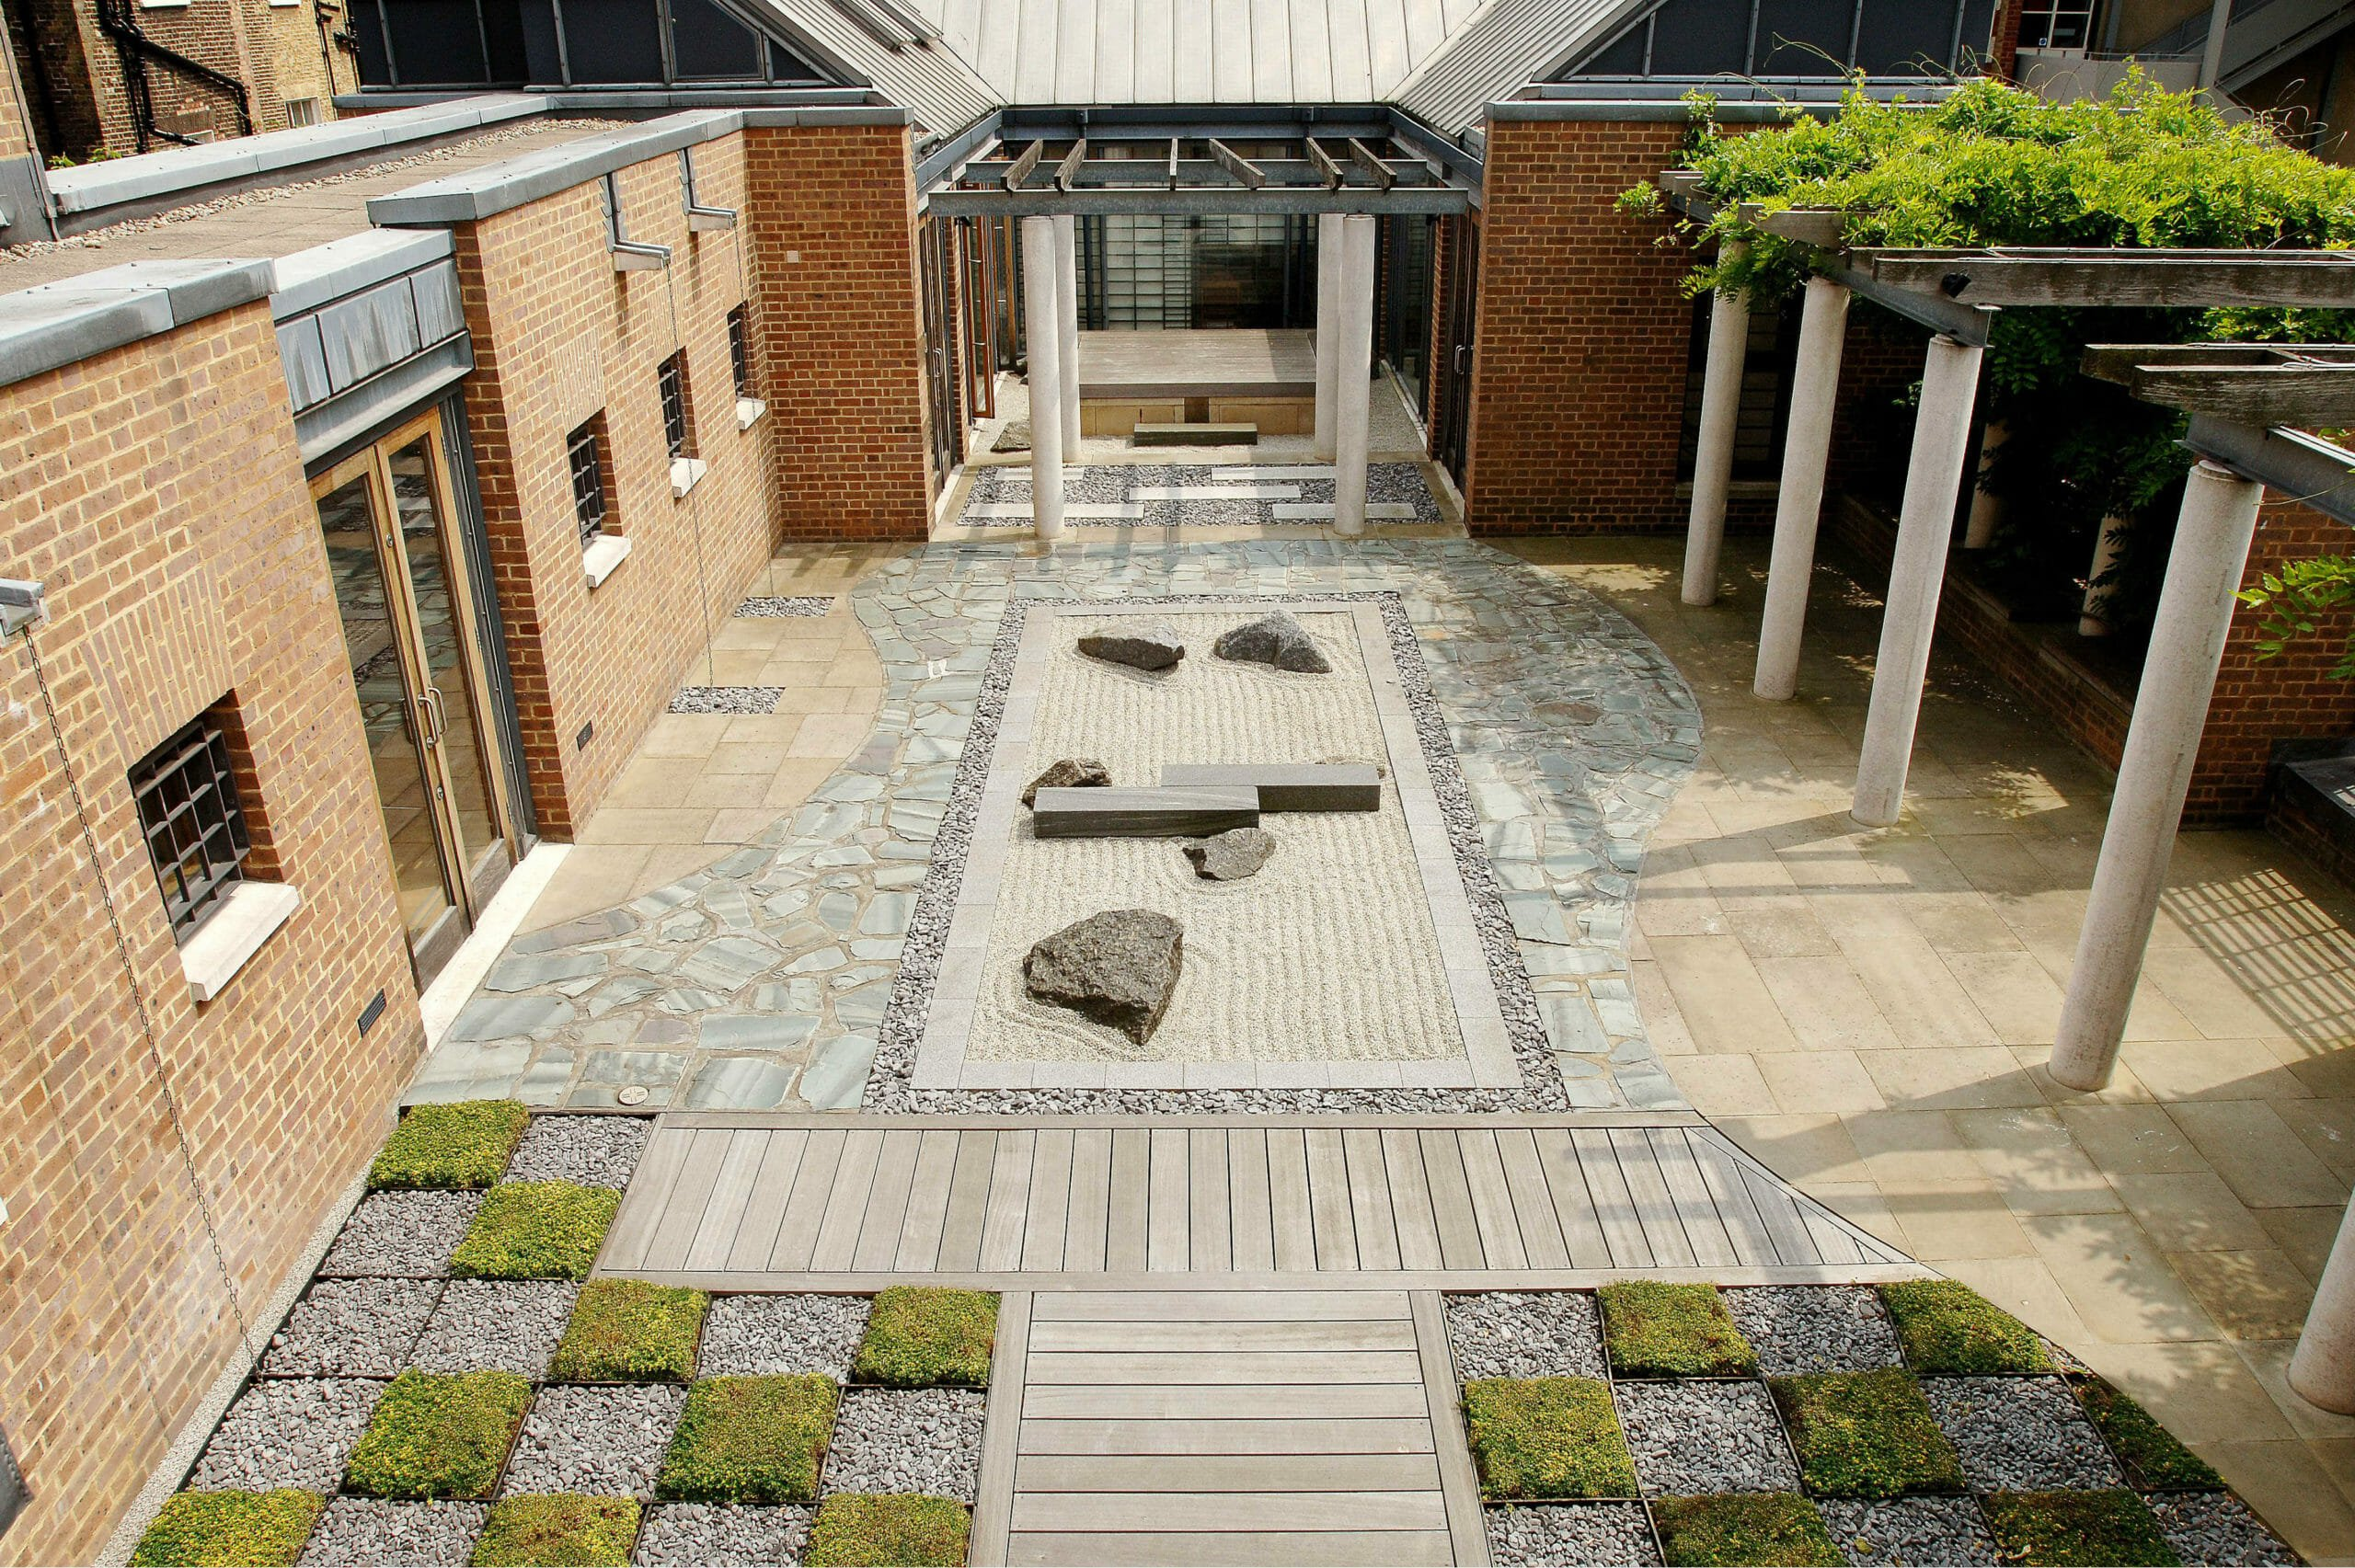 Japanese Roof Garden At SOAS